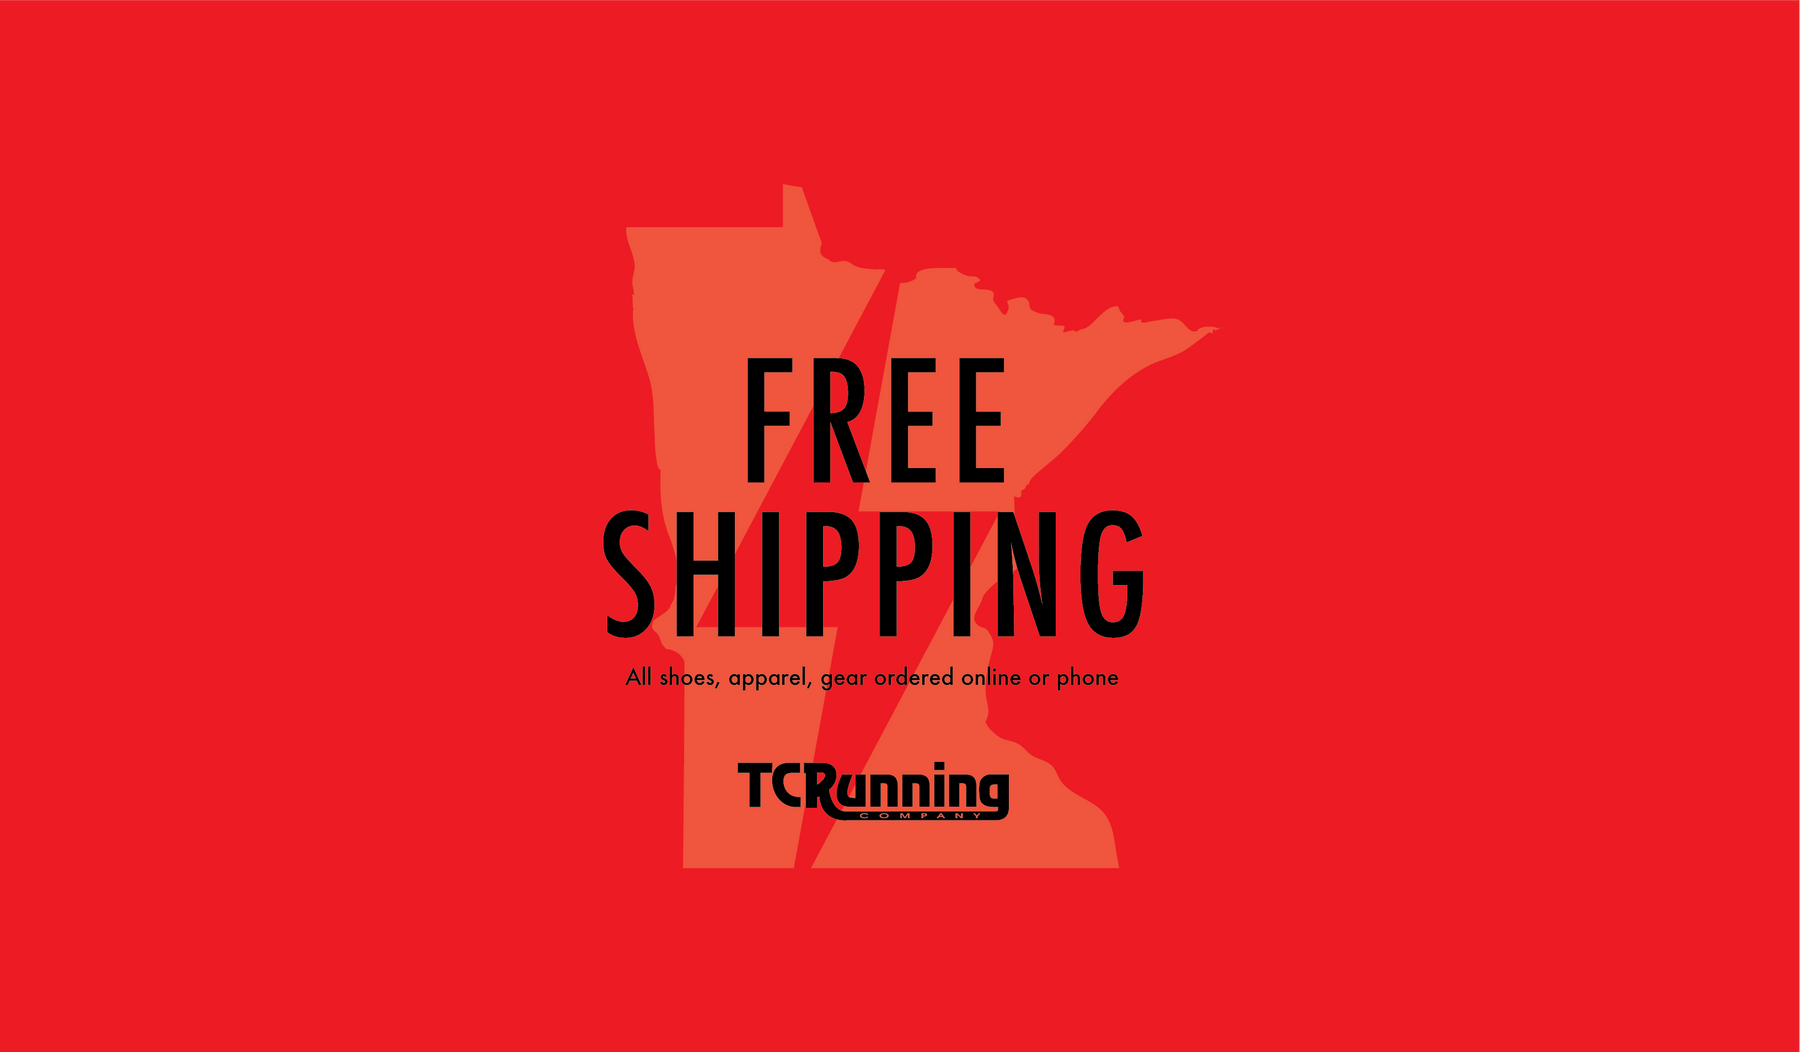 Free Shipping by phone or online